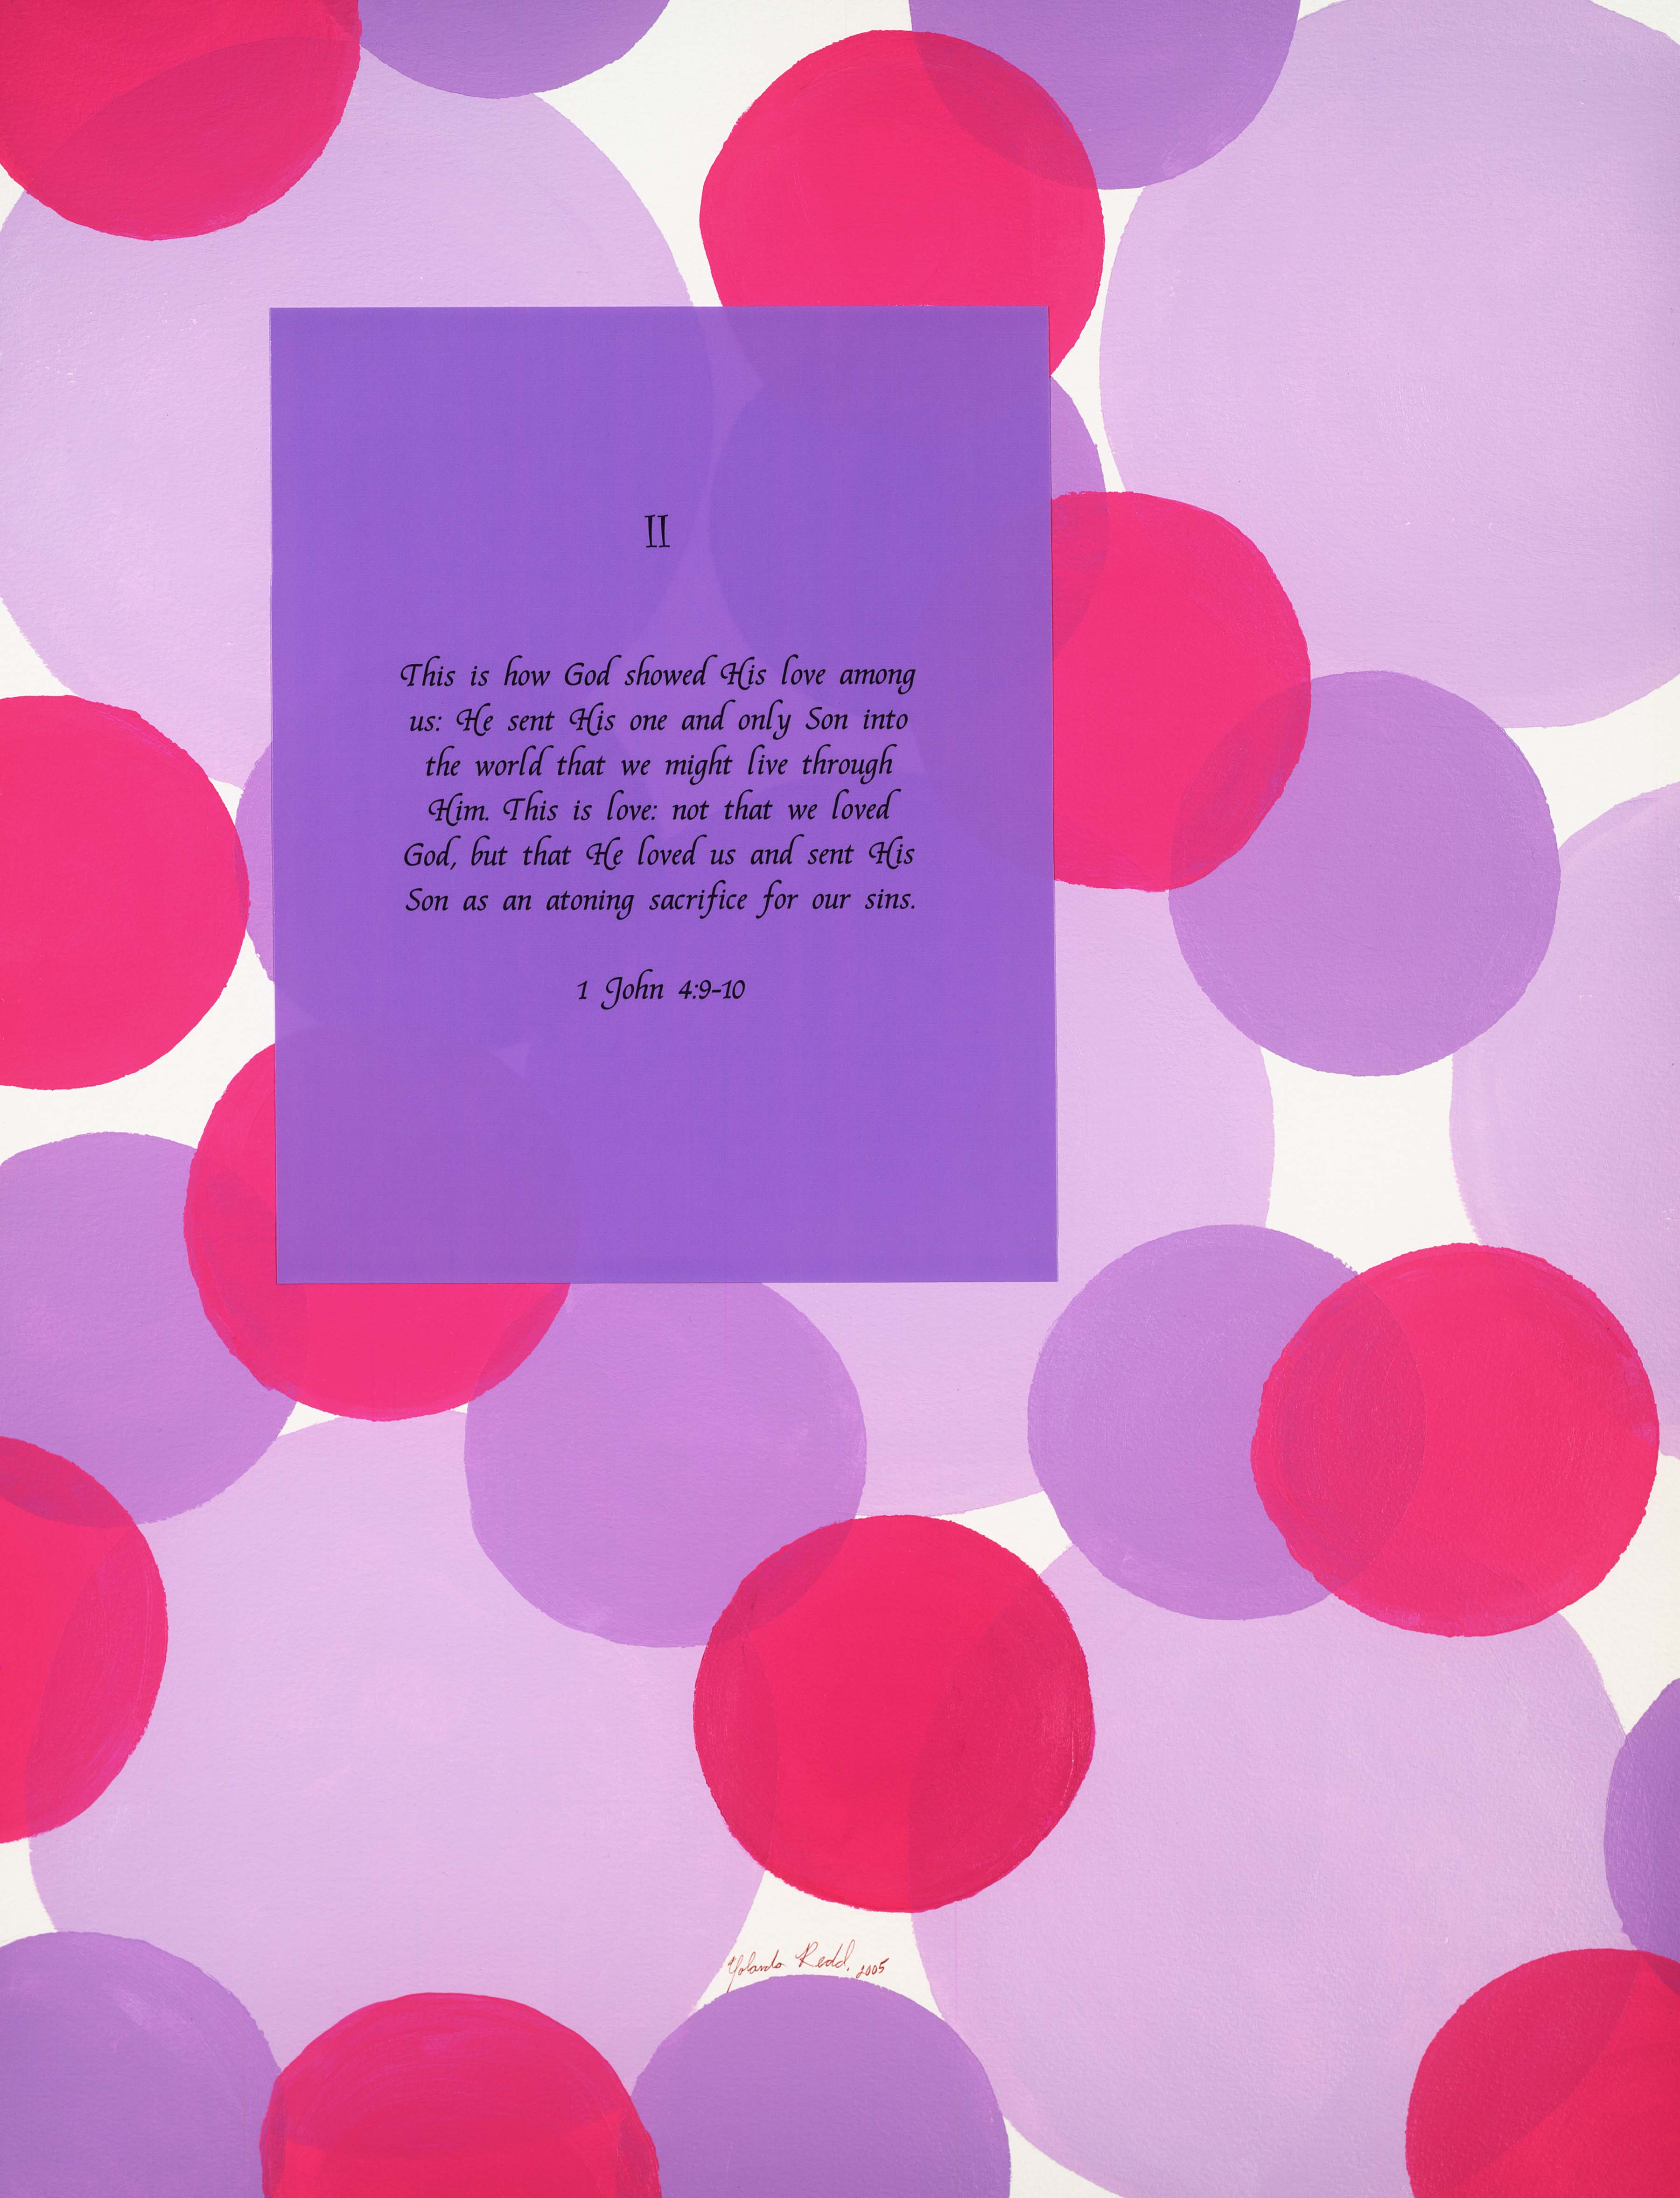 reasons for the cross, purple, lavendar, collage